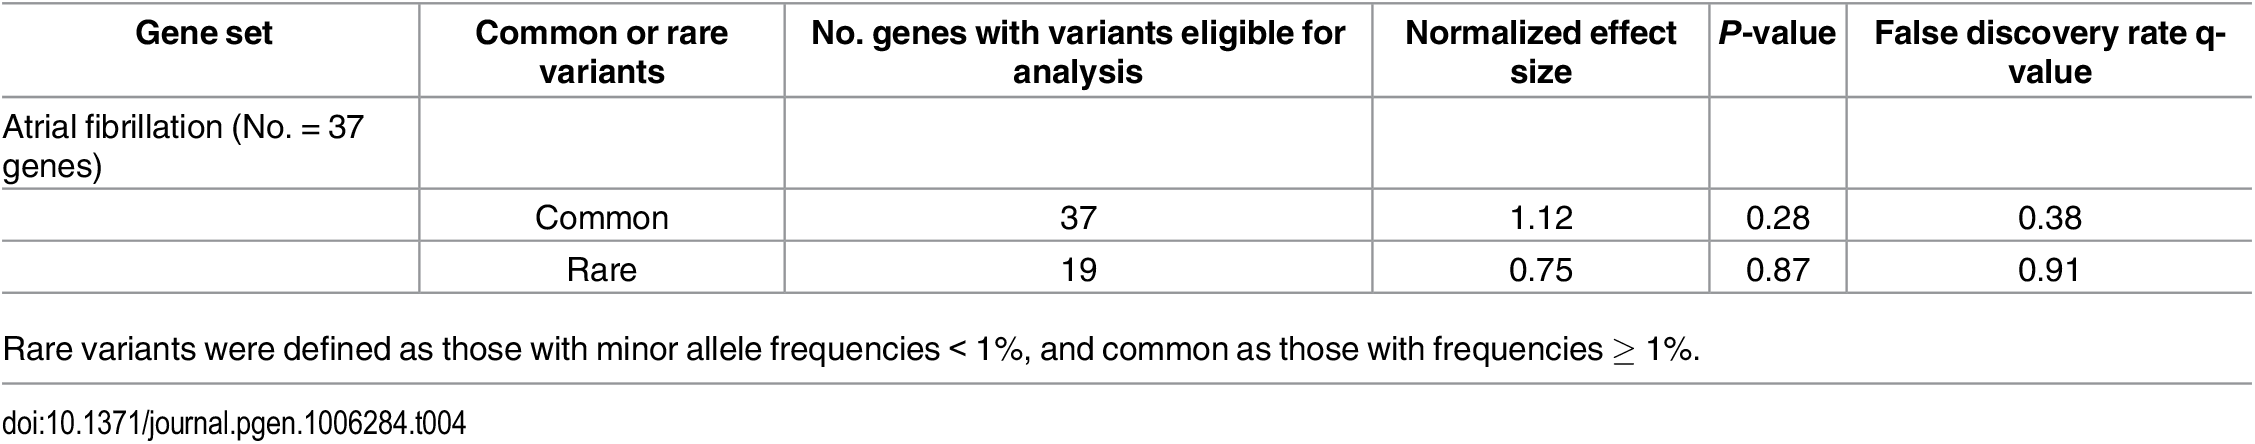 Assessment of variant enrichment in genes purportedly implicated in atrial fibrillation.